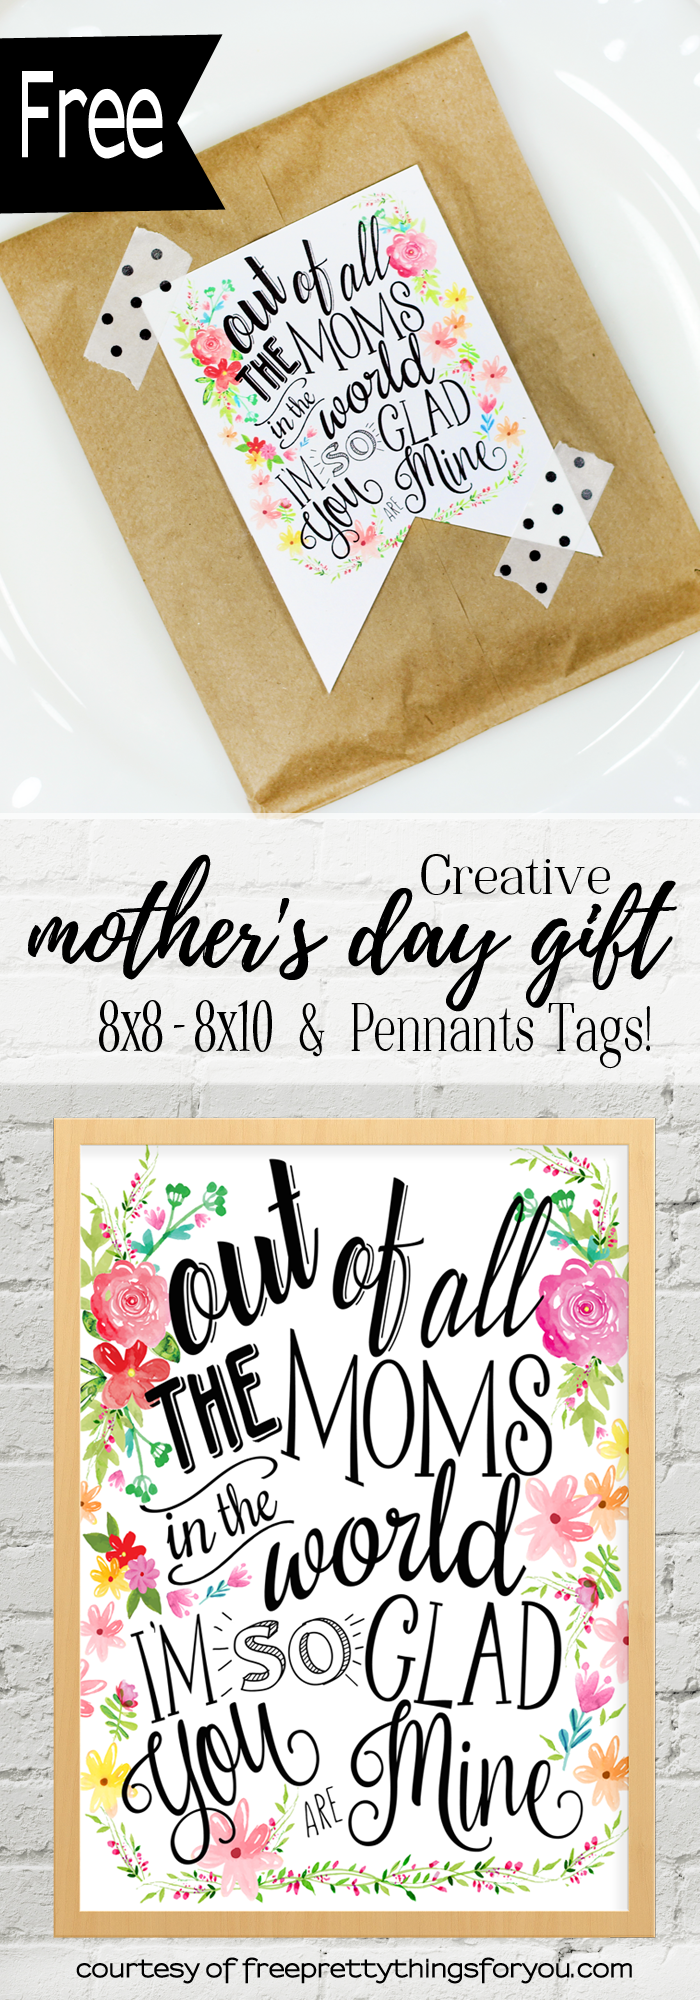 http://thecottagemarket.com/wp-content/uploads/2016/04/creative-mothers-day-gifts-Free-printable-FPTFY-Pintower2.png